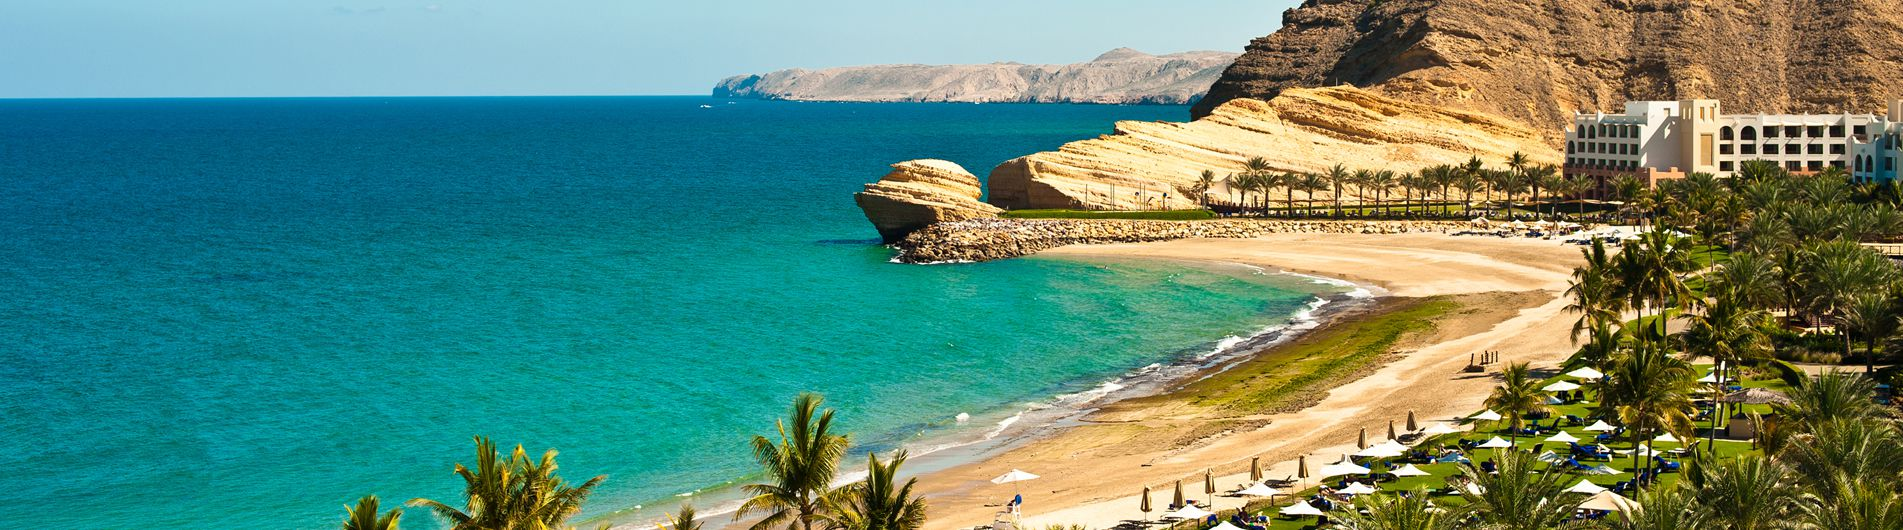 Oman Beach Holidays